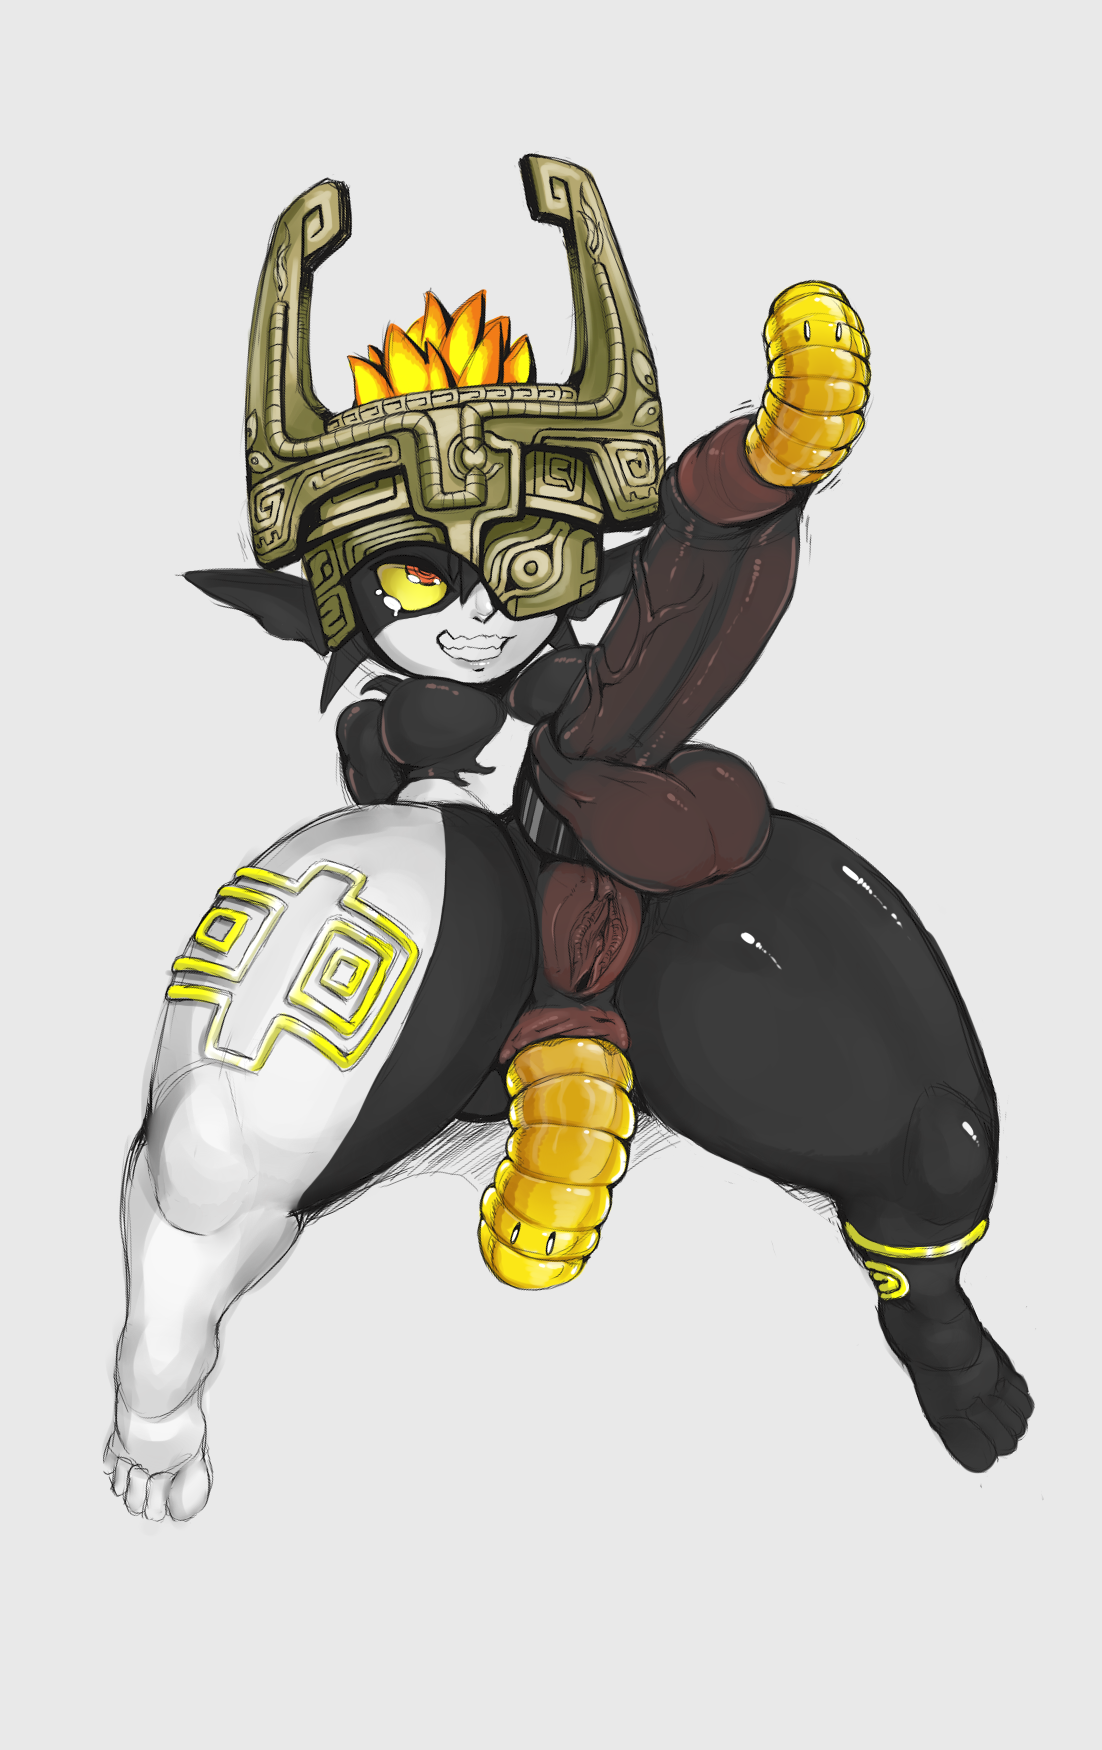 the-nsfw-diner midna imp midna the legend of zelda 1futa alternate color anal anal penetration anus breasts cock ring dickgirl full-package futanari futanari hyper intersex large penis parasite penetration penis pussy testicles urethral insertion worm